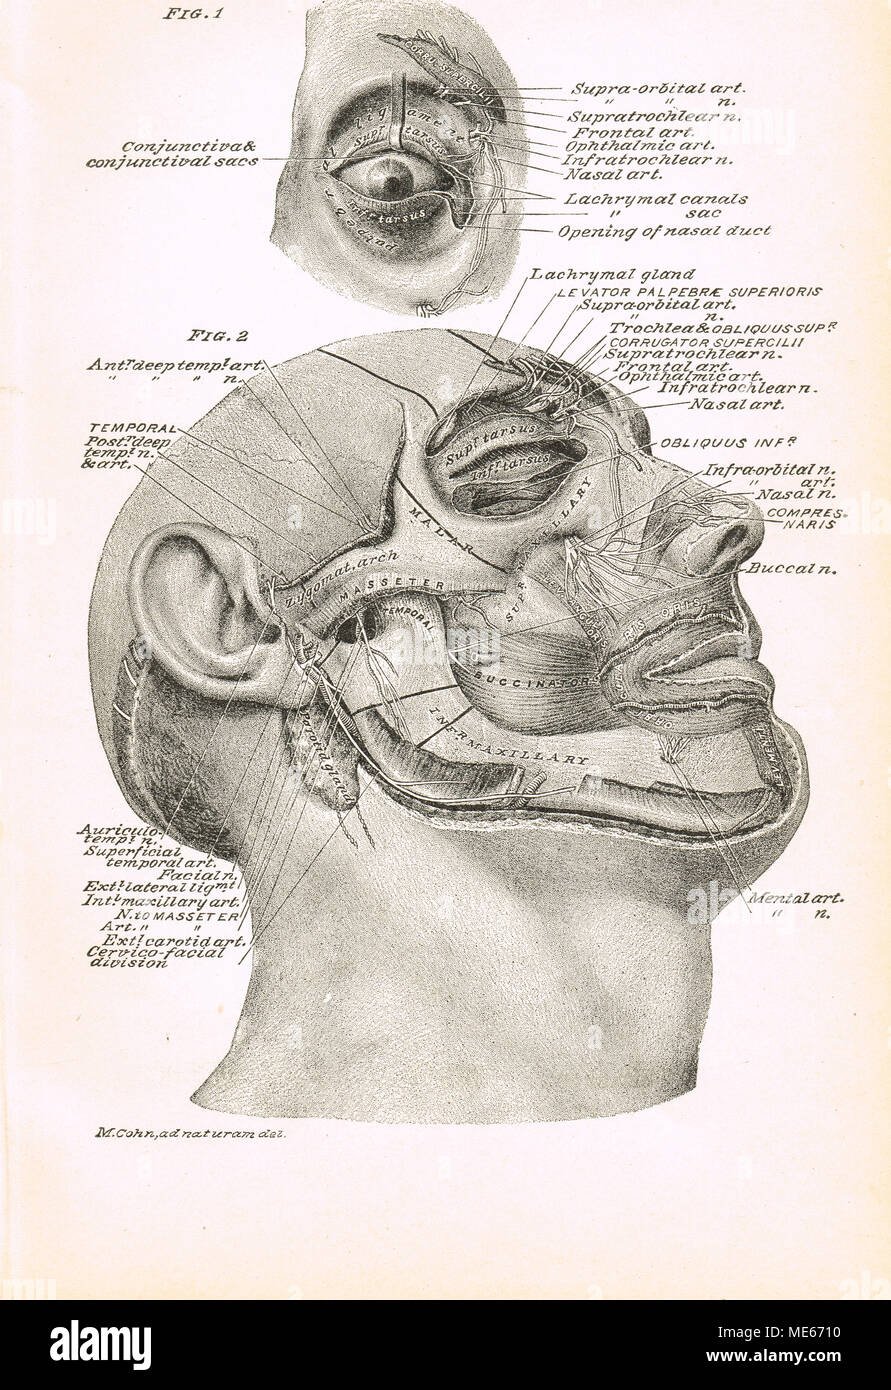 19th century facial cross section - Stock Image